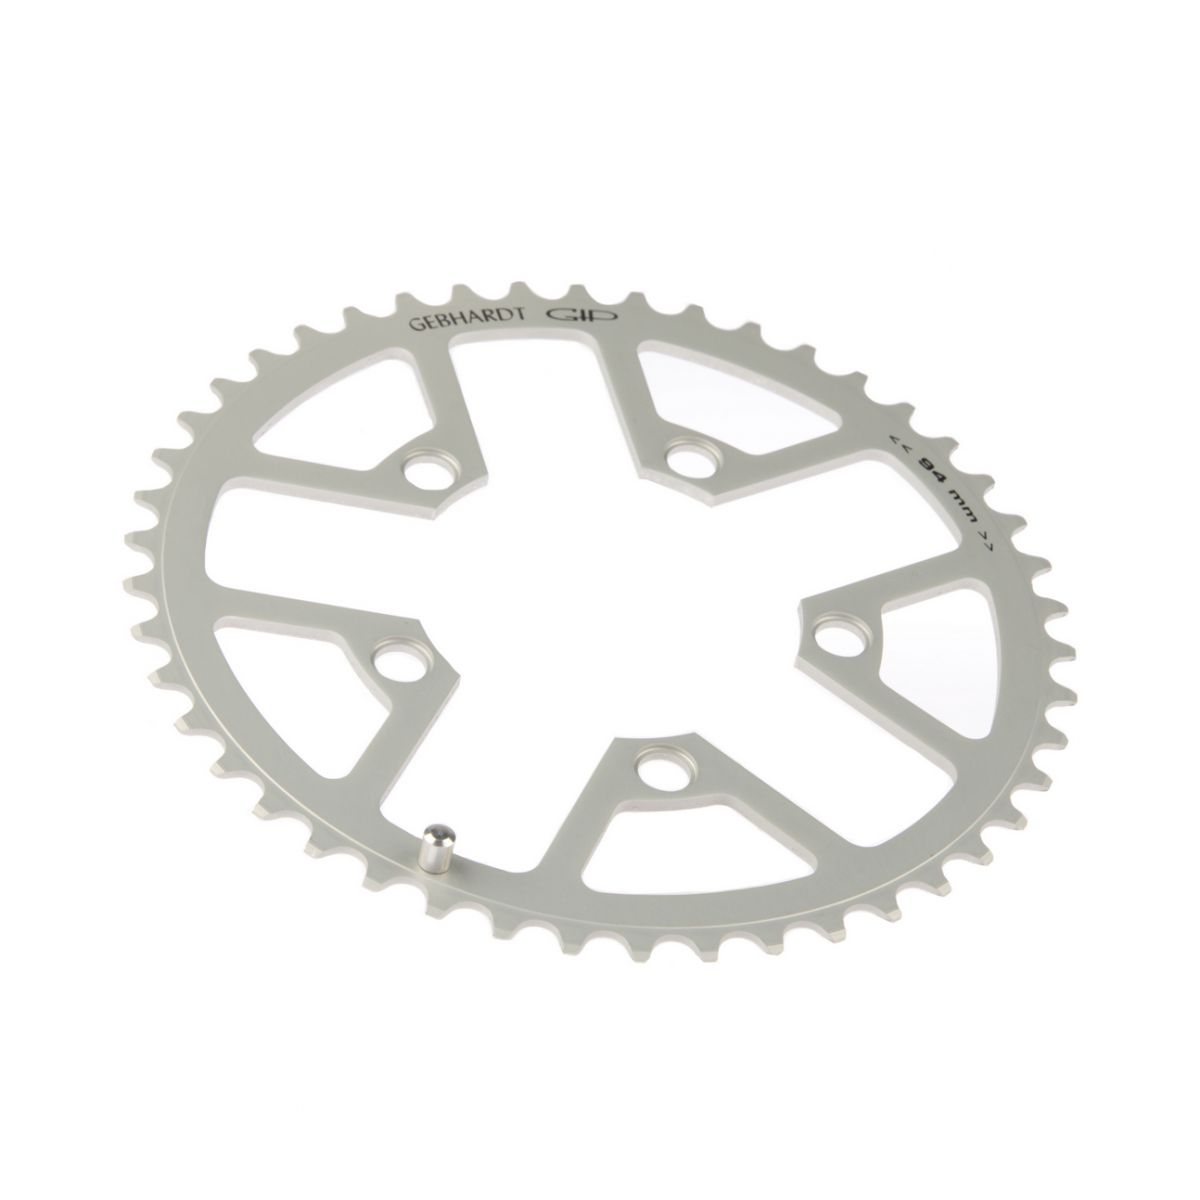 gebhardt chainring classic bcd 94 mm 5hole 44t silver